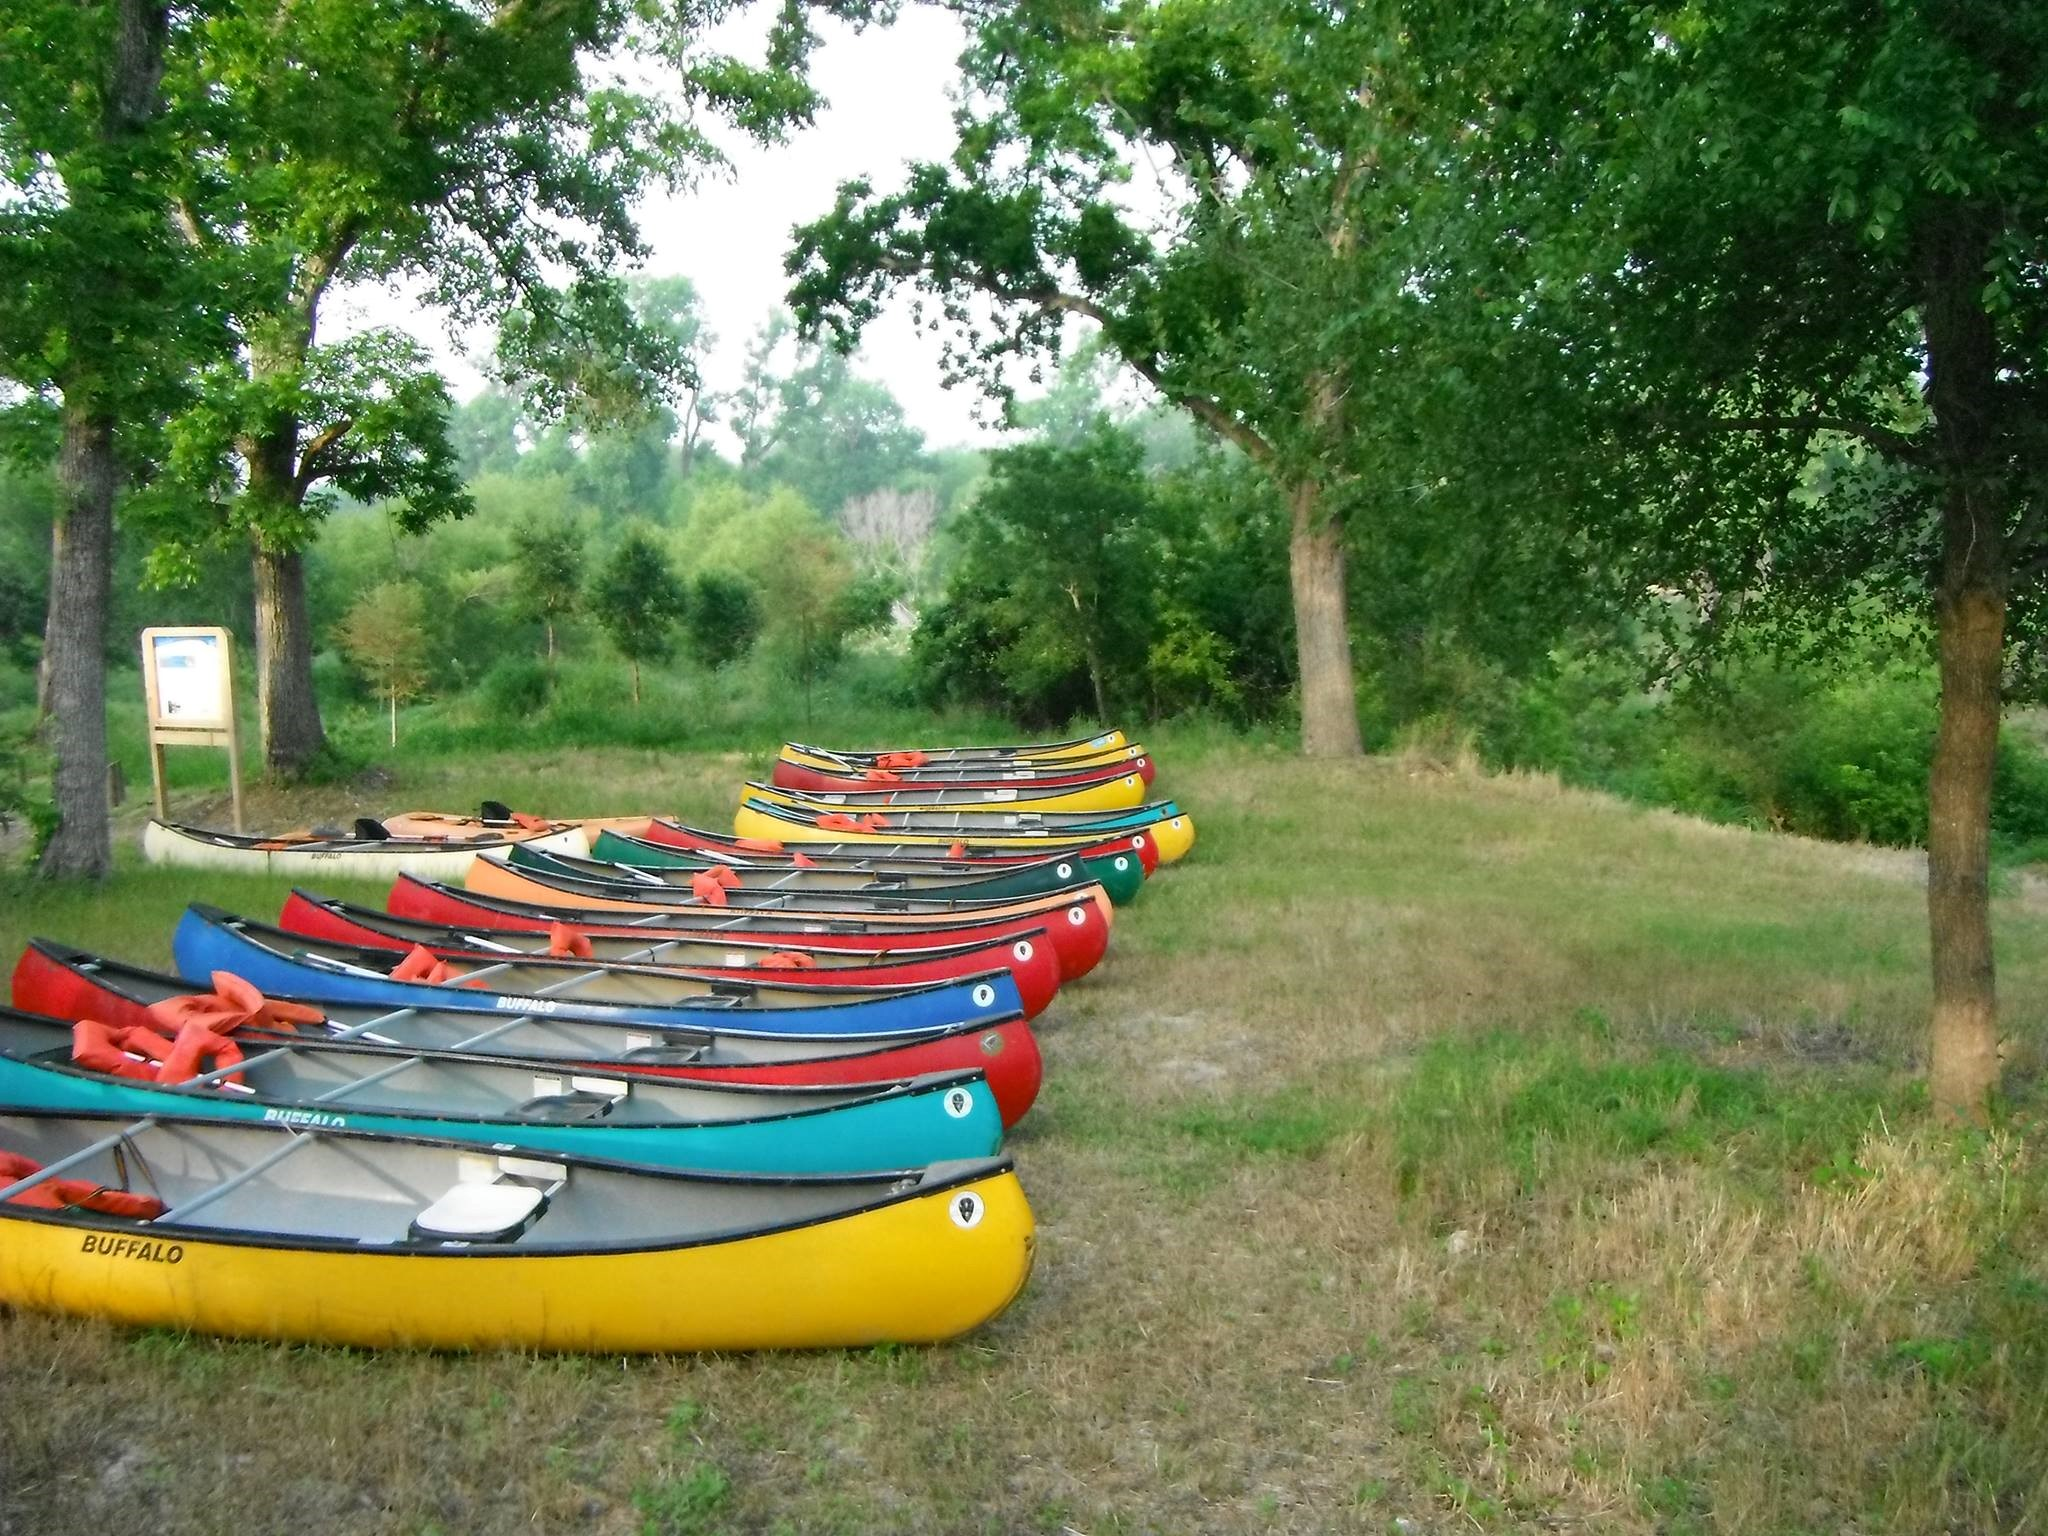 Canoes line up along the SASPAMCO Paddling Trail take out point at Helton Nature Park